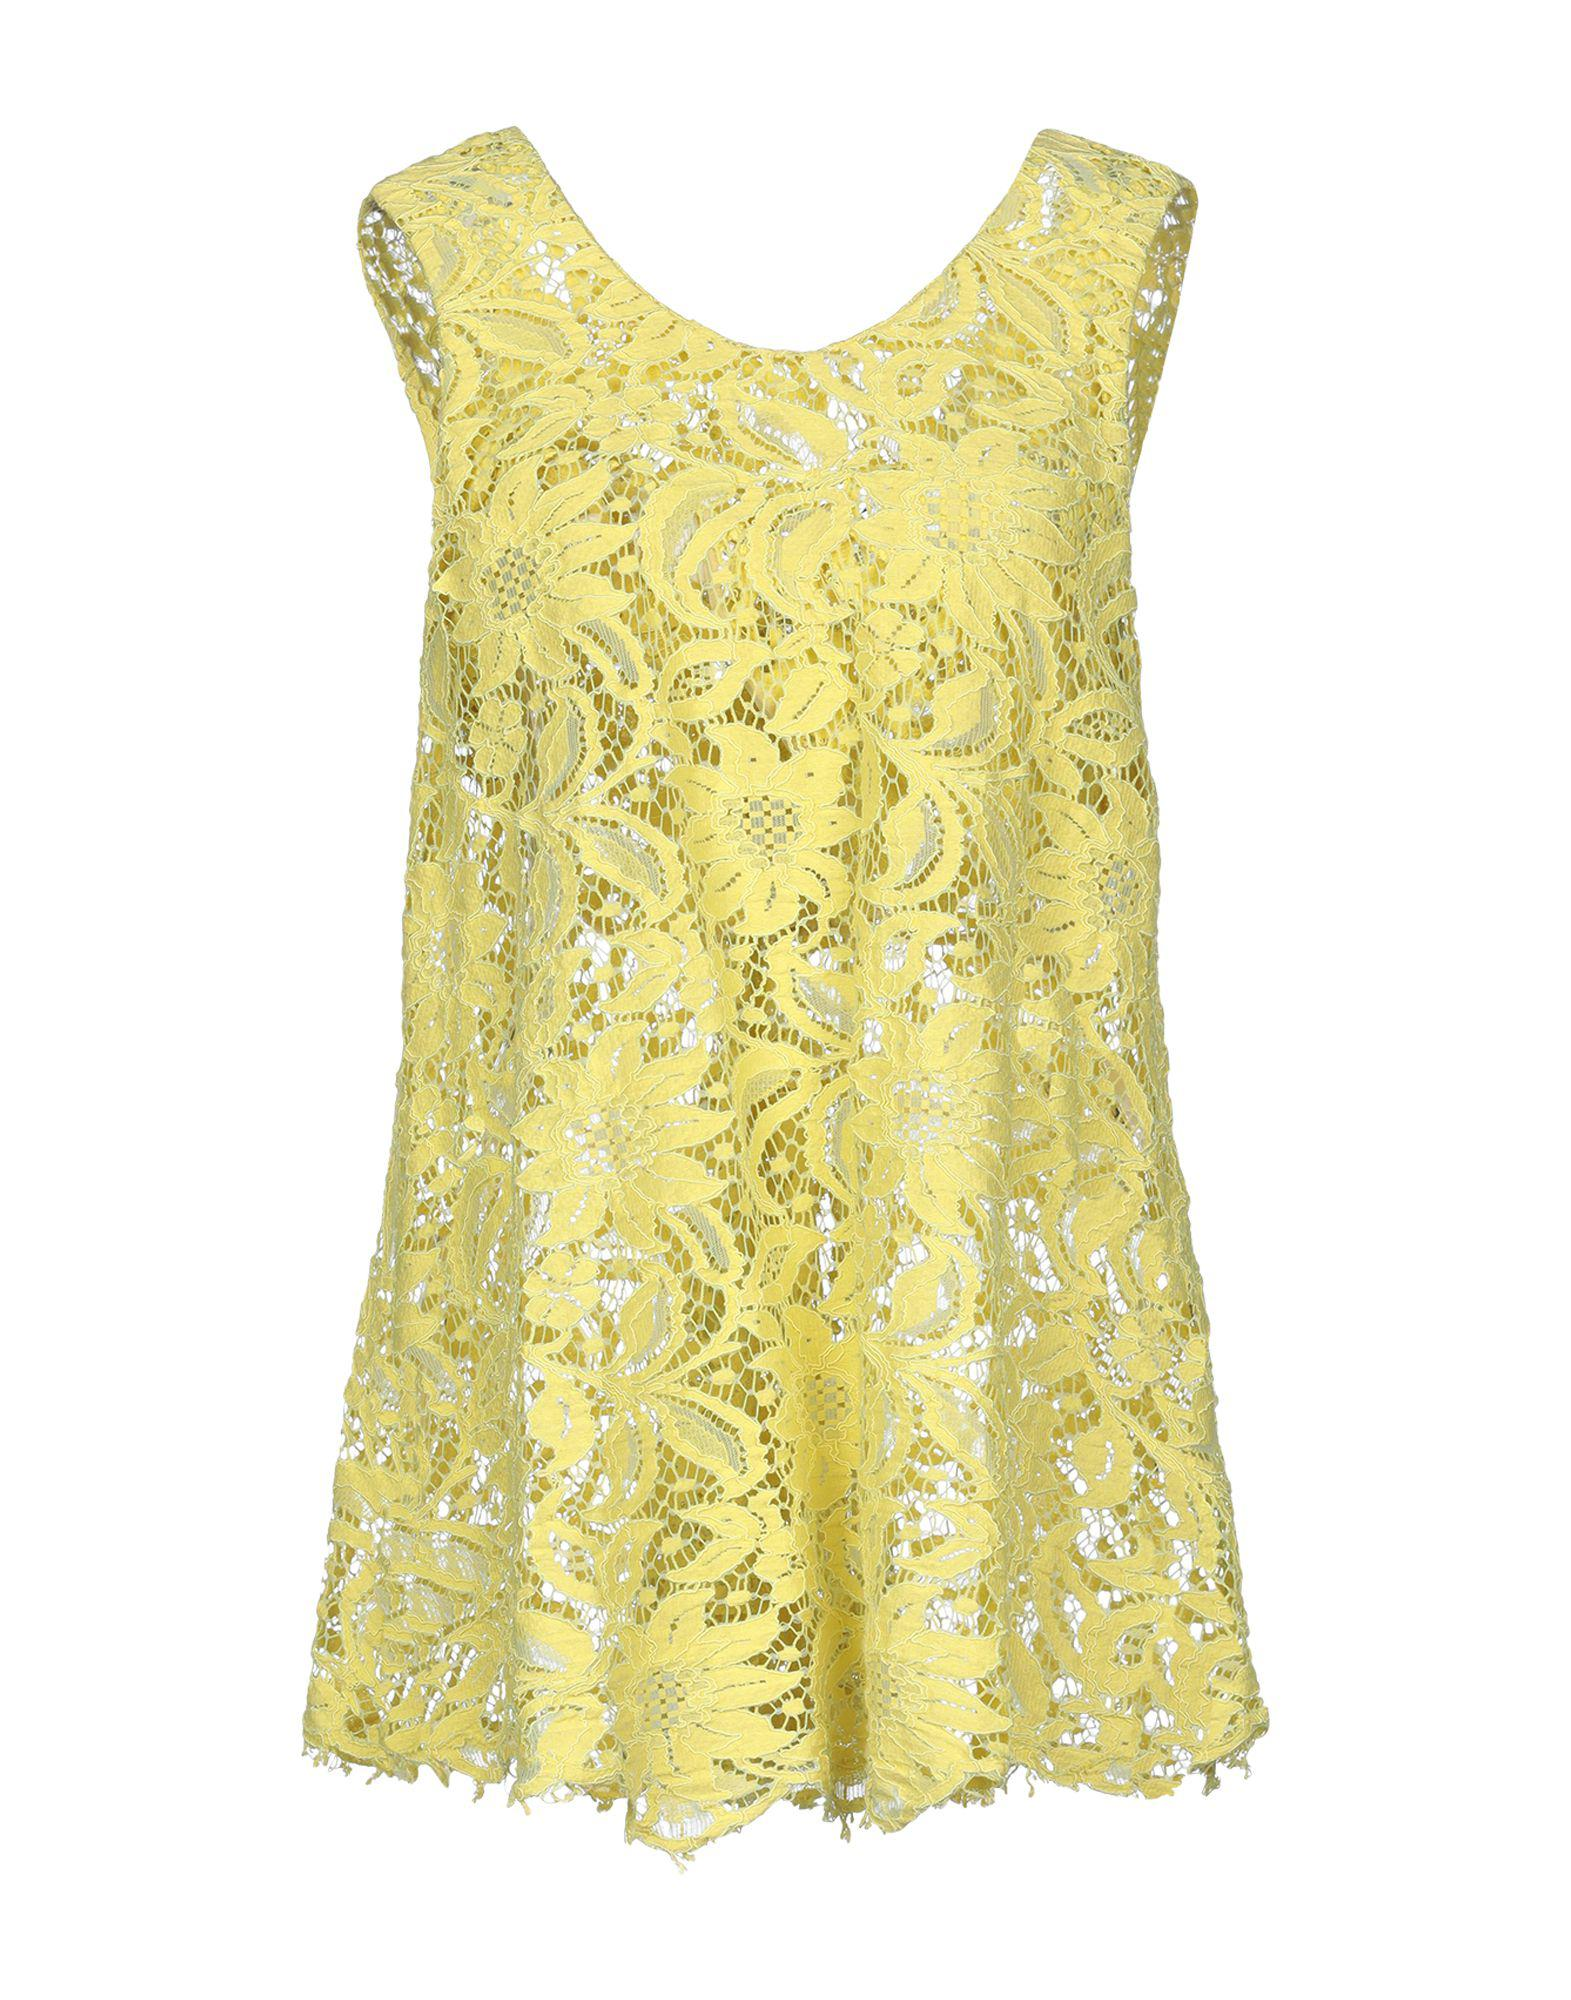 f1c869afc0131 Ermanno Scervino Top in Yellow - Lyst